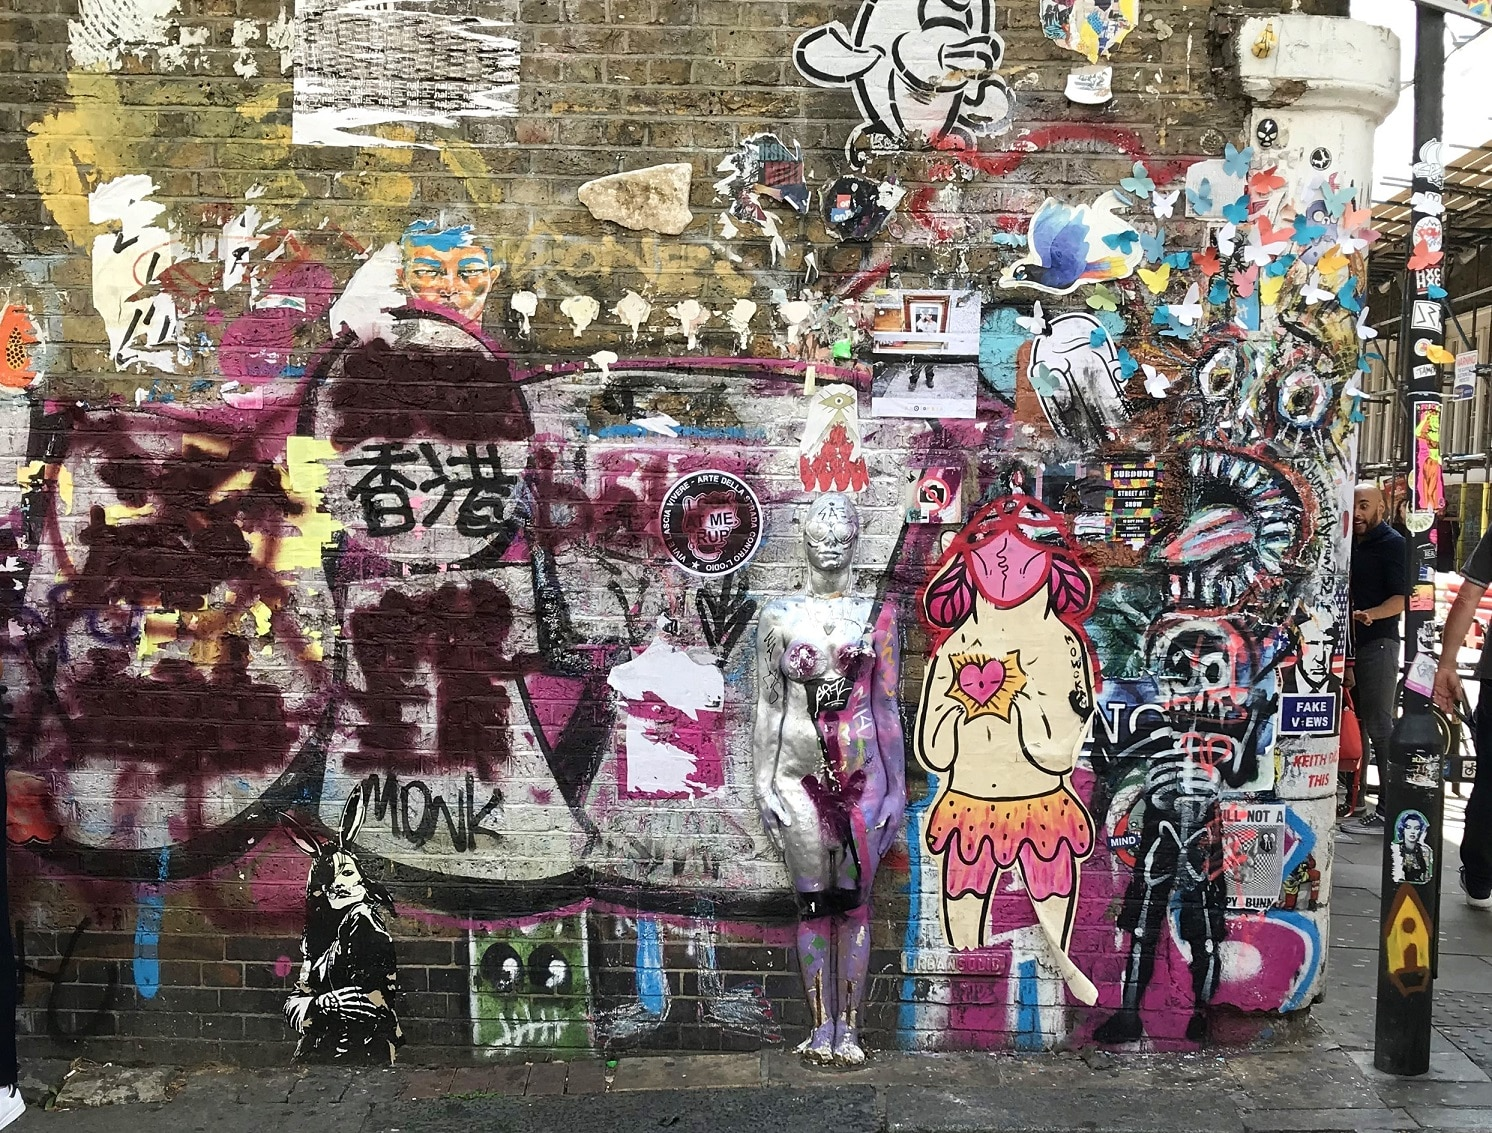 London's East End is the place to go for street art